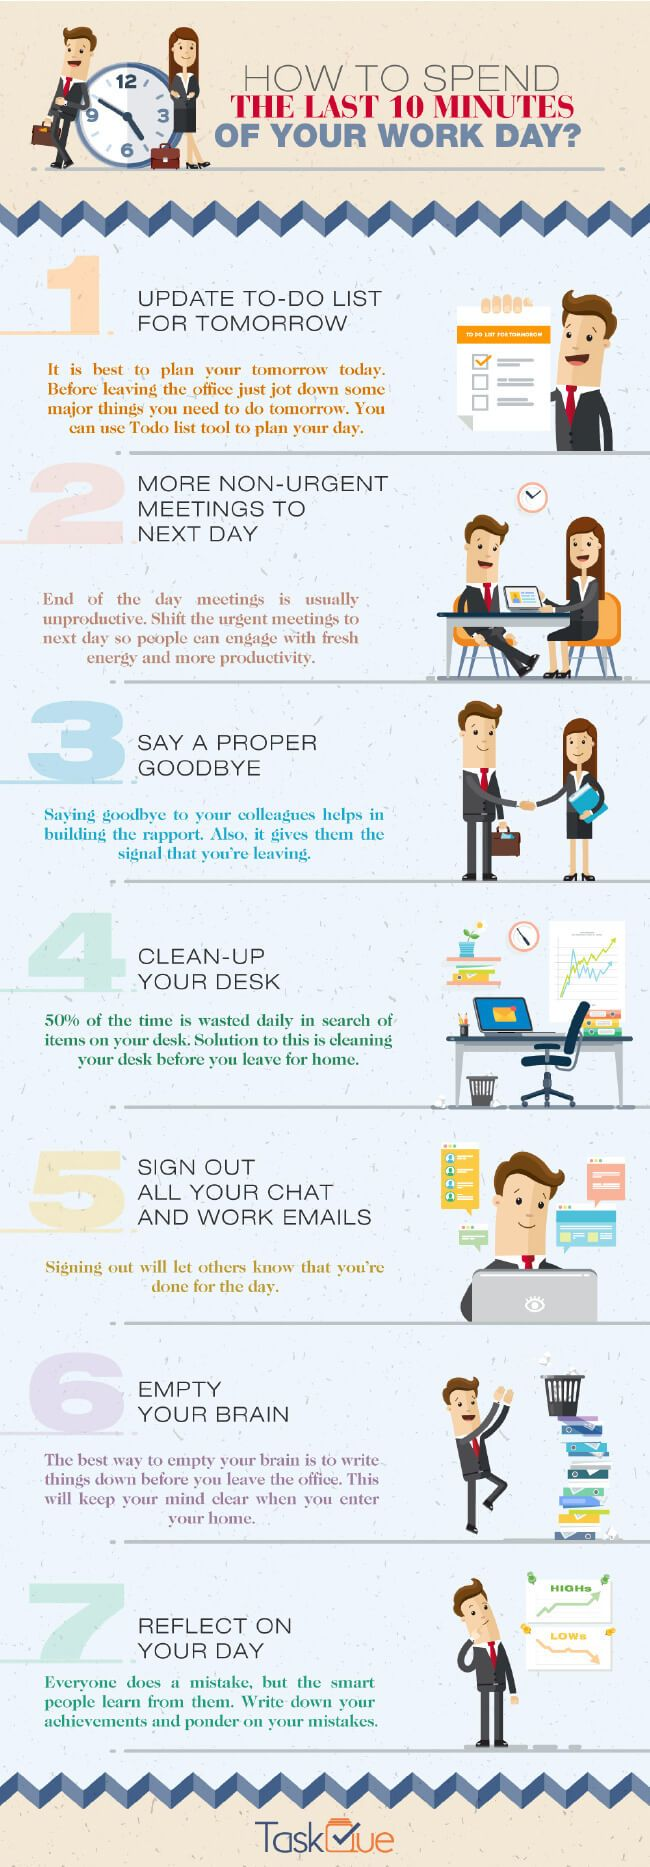 how to reduce stress by powering your time at work the last 10 minutes. tipsographic main